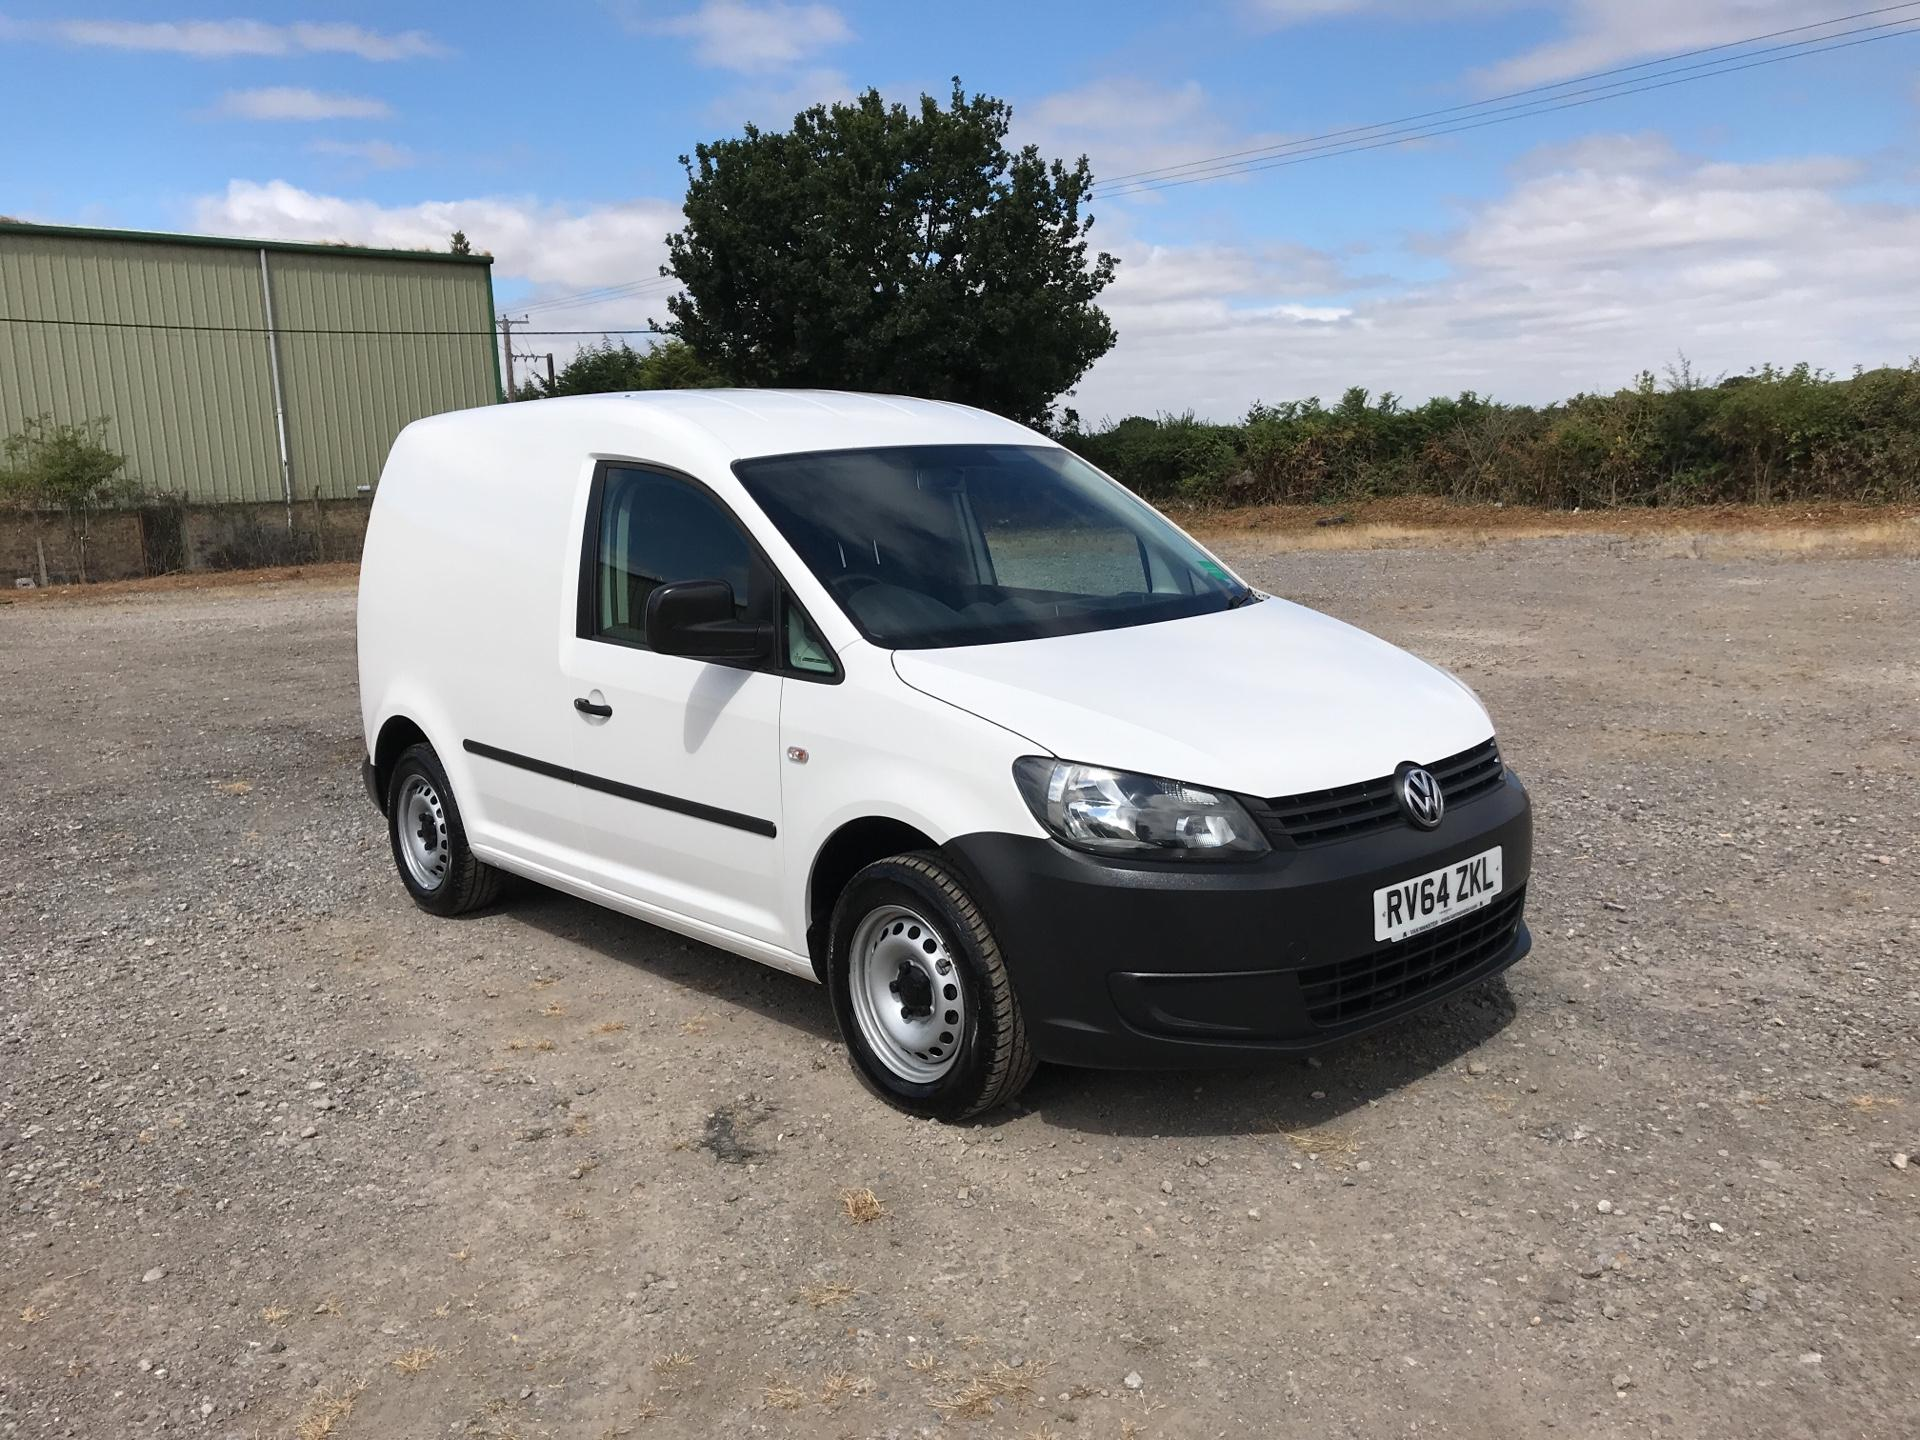 2014 Volkswagen Caddy  1.6 75PS STARTLINE EURO 5 (RV64ZKL)